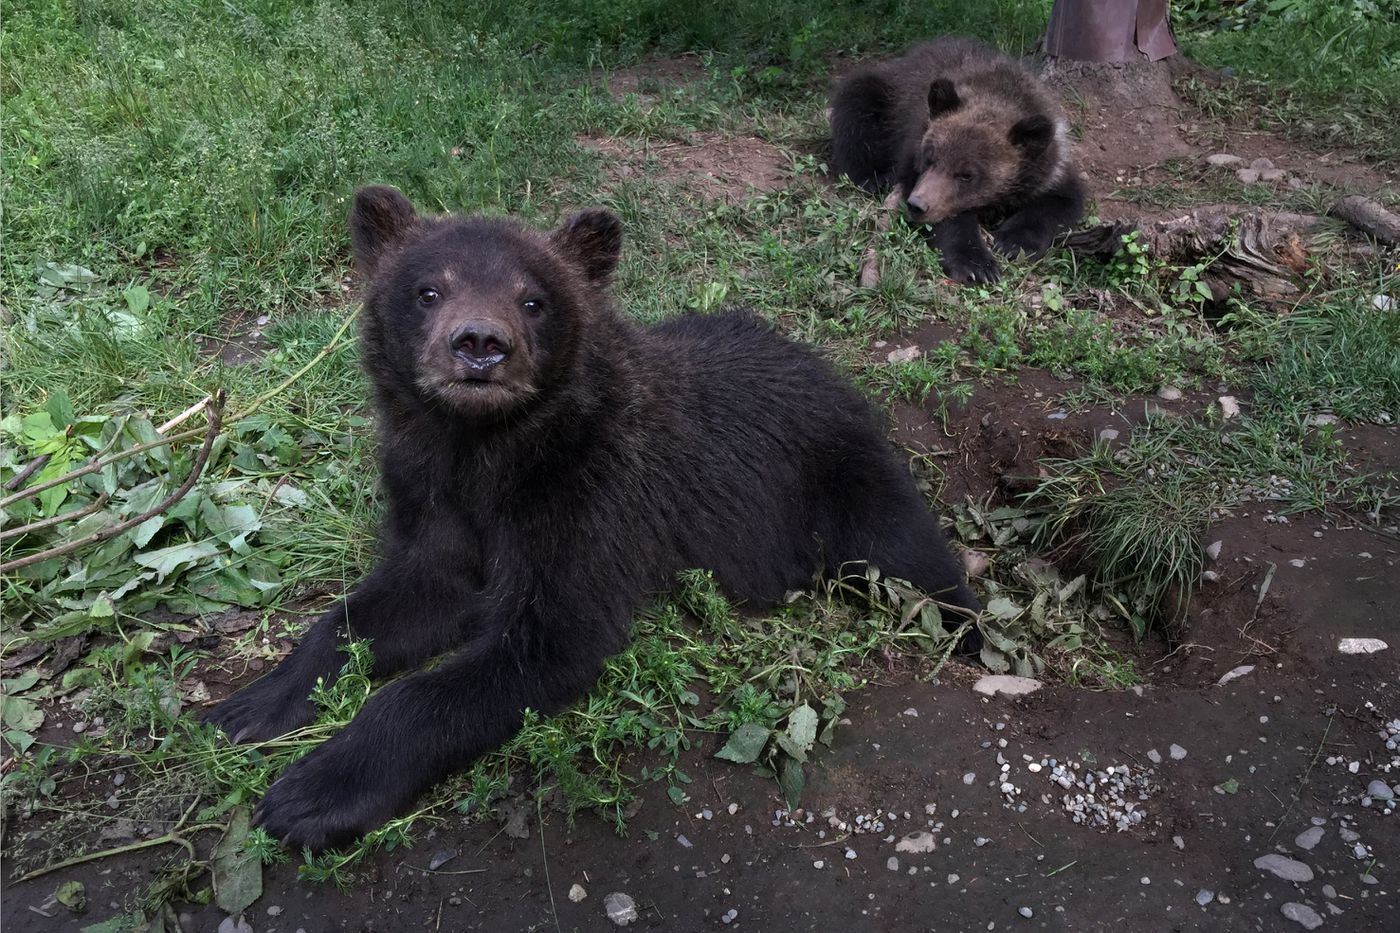 Two orphaned brown bear cubs from the Anchorage Hillside are being cared for at the Alaska Zoo. (Bill Roth / Alaska Dispatch News)